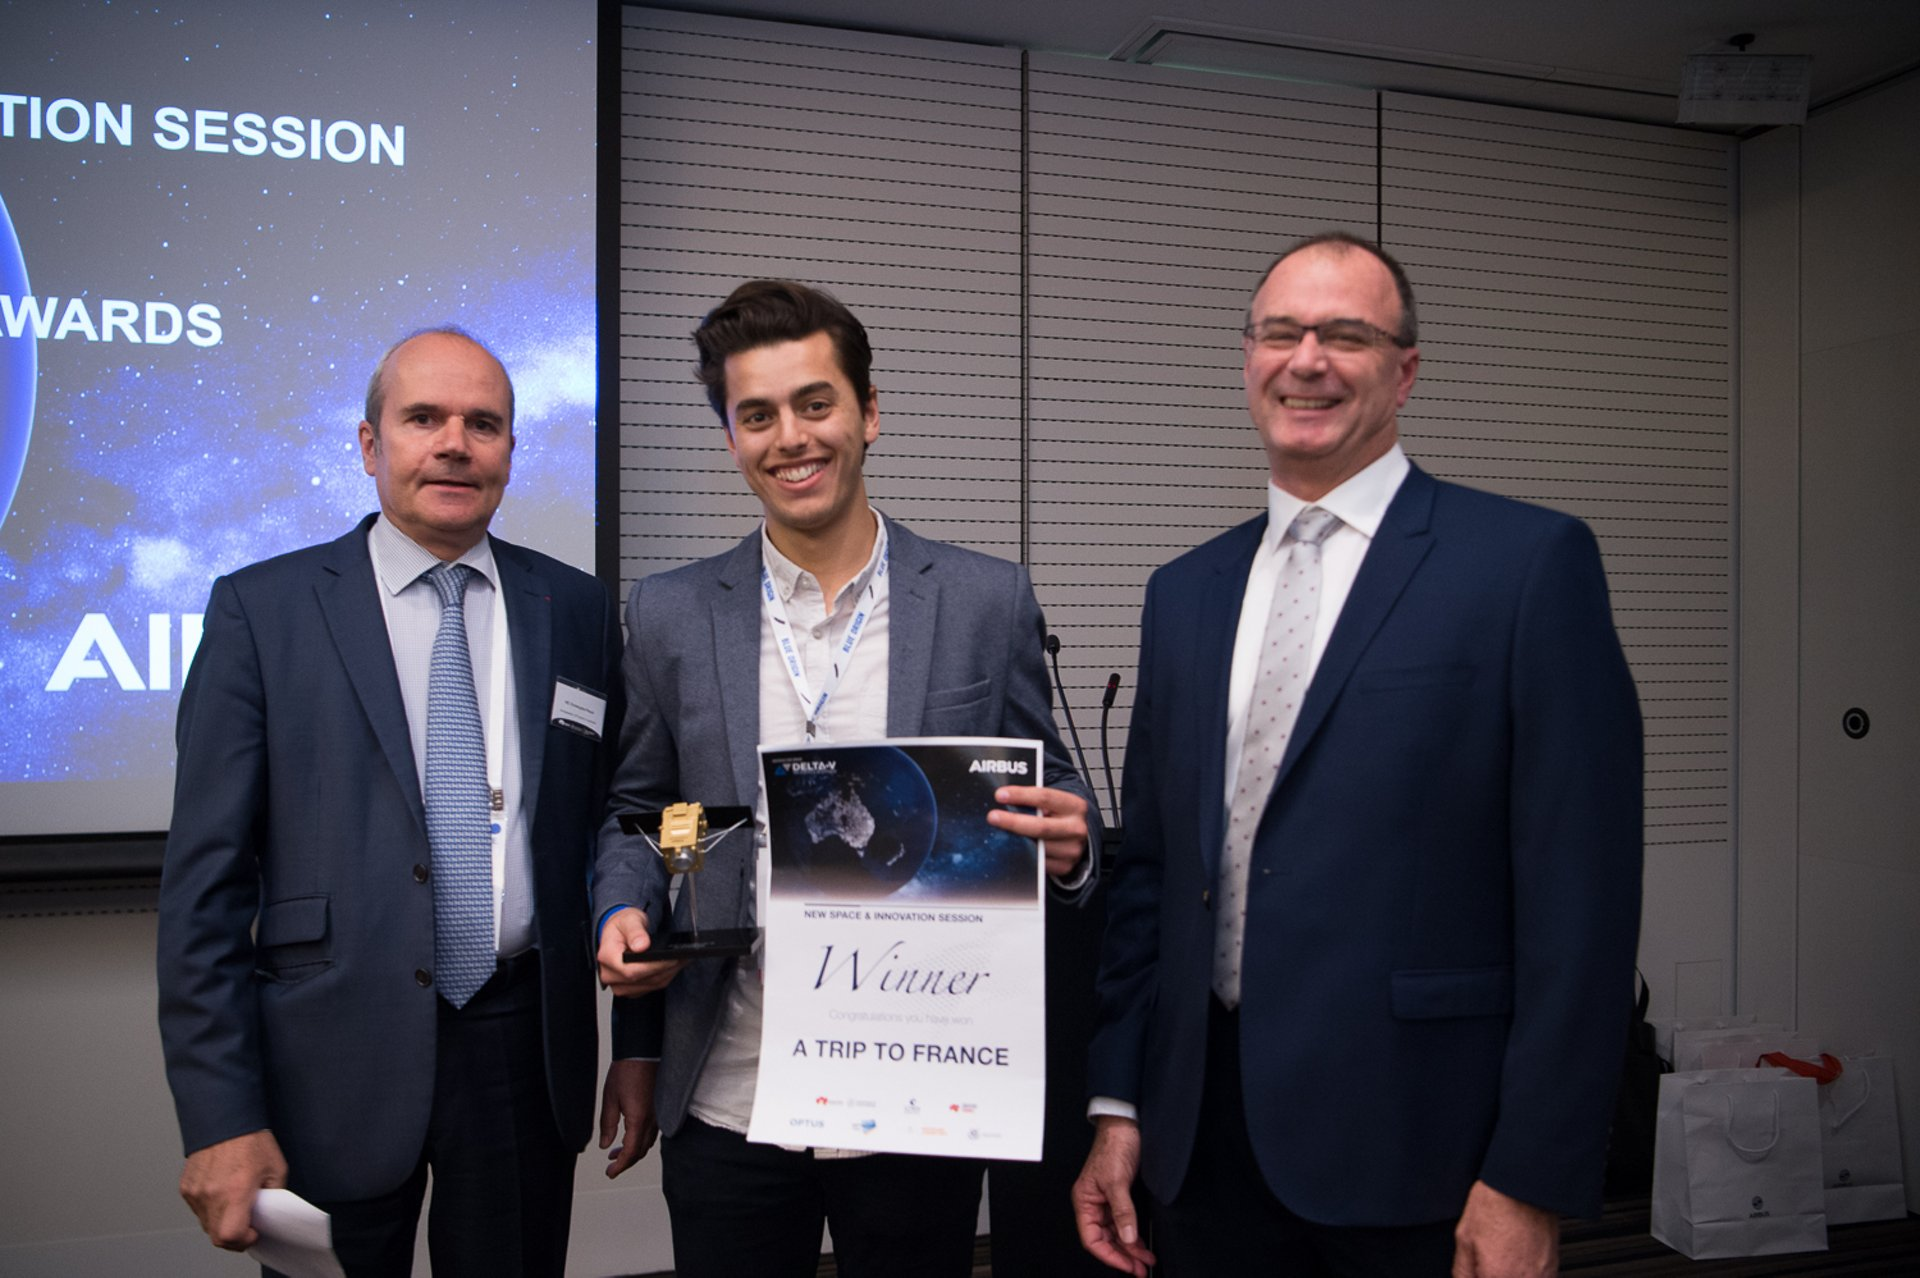 Sebastian Chaoui with the French Ambassador to Australia, H.E. Christophe Penot (left) and Anthony Fraser, Managing Director Airbus Australia Pacific